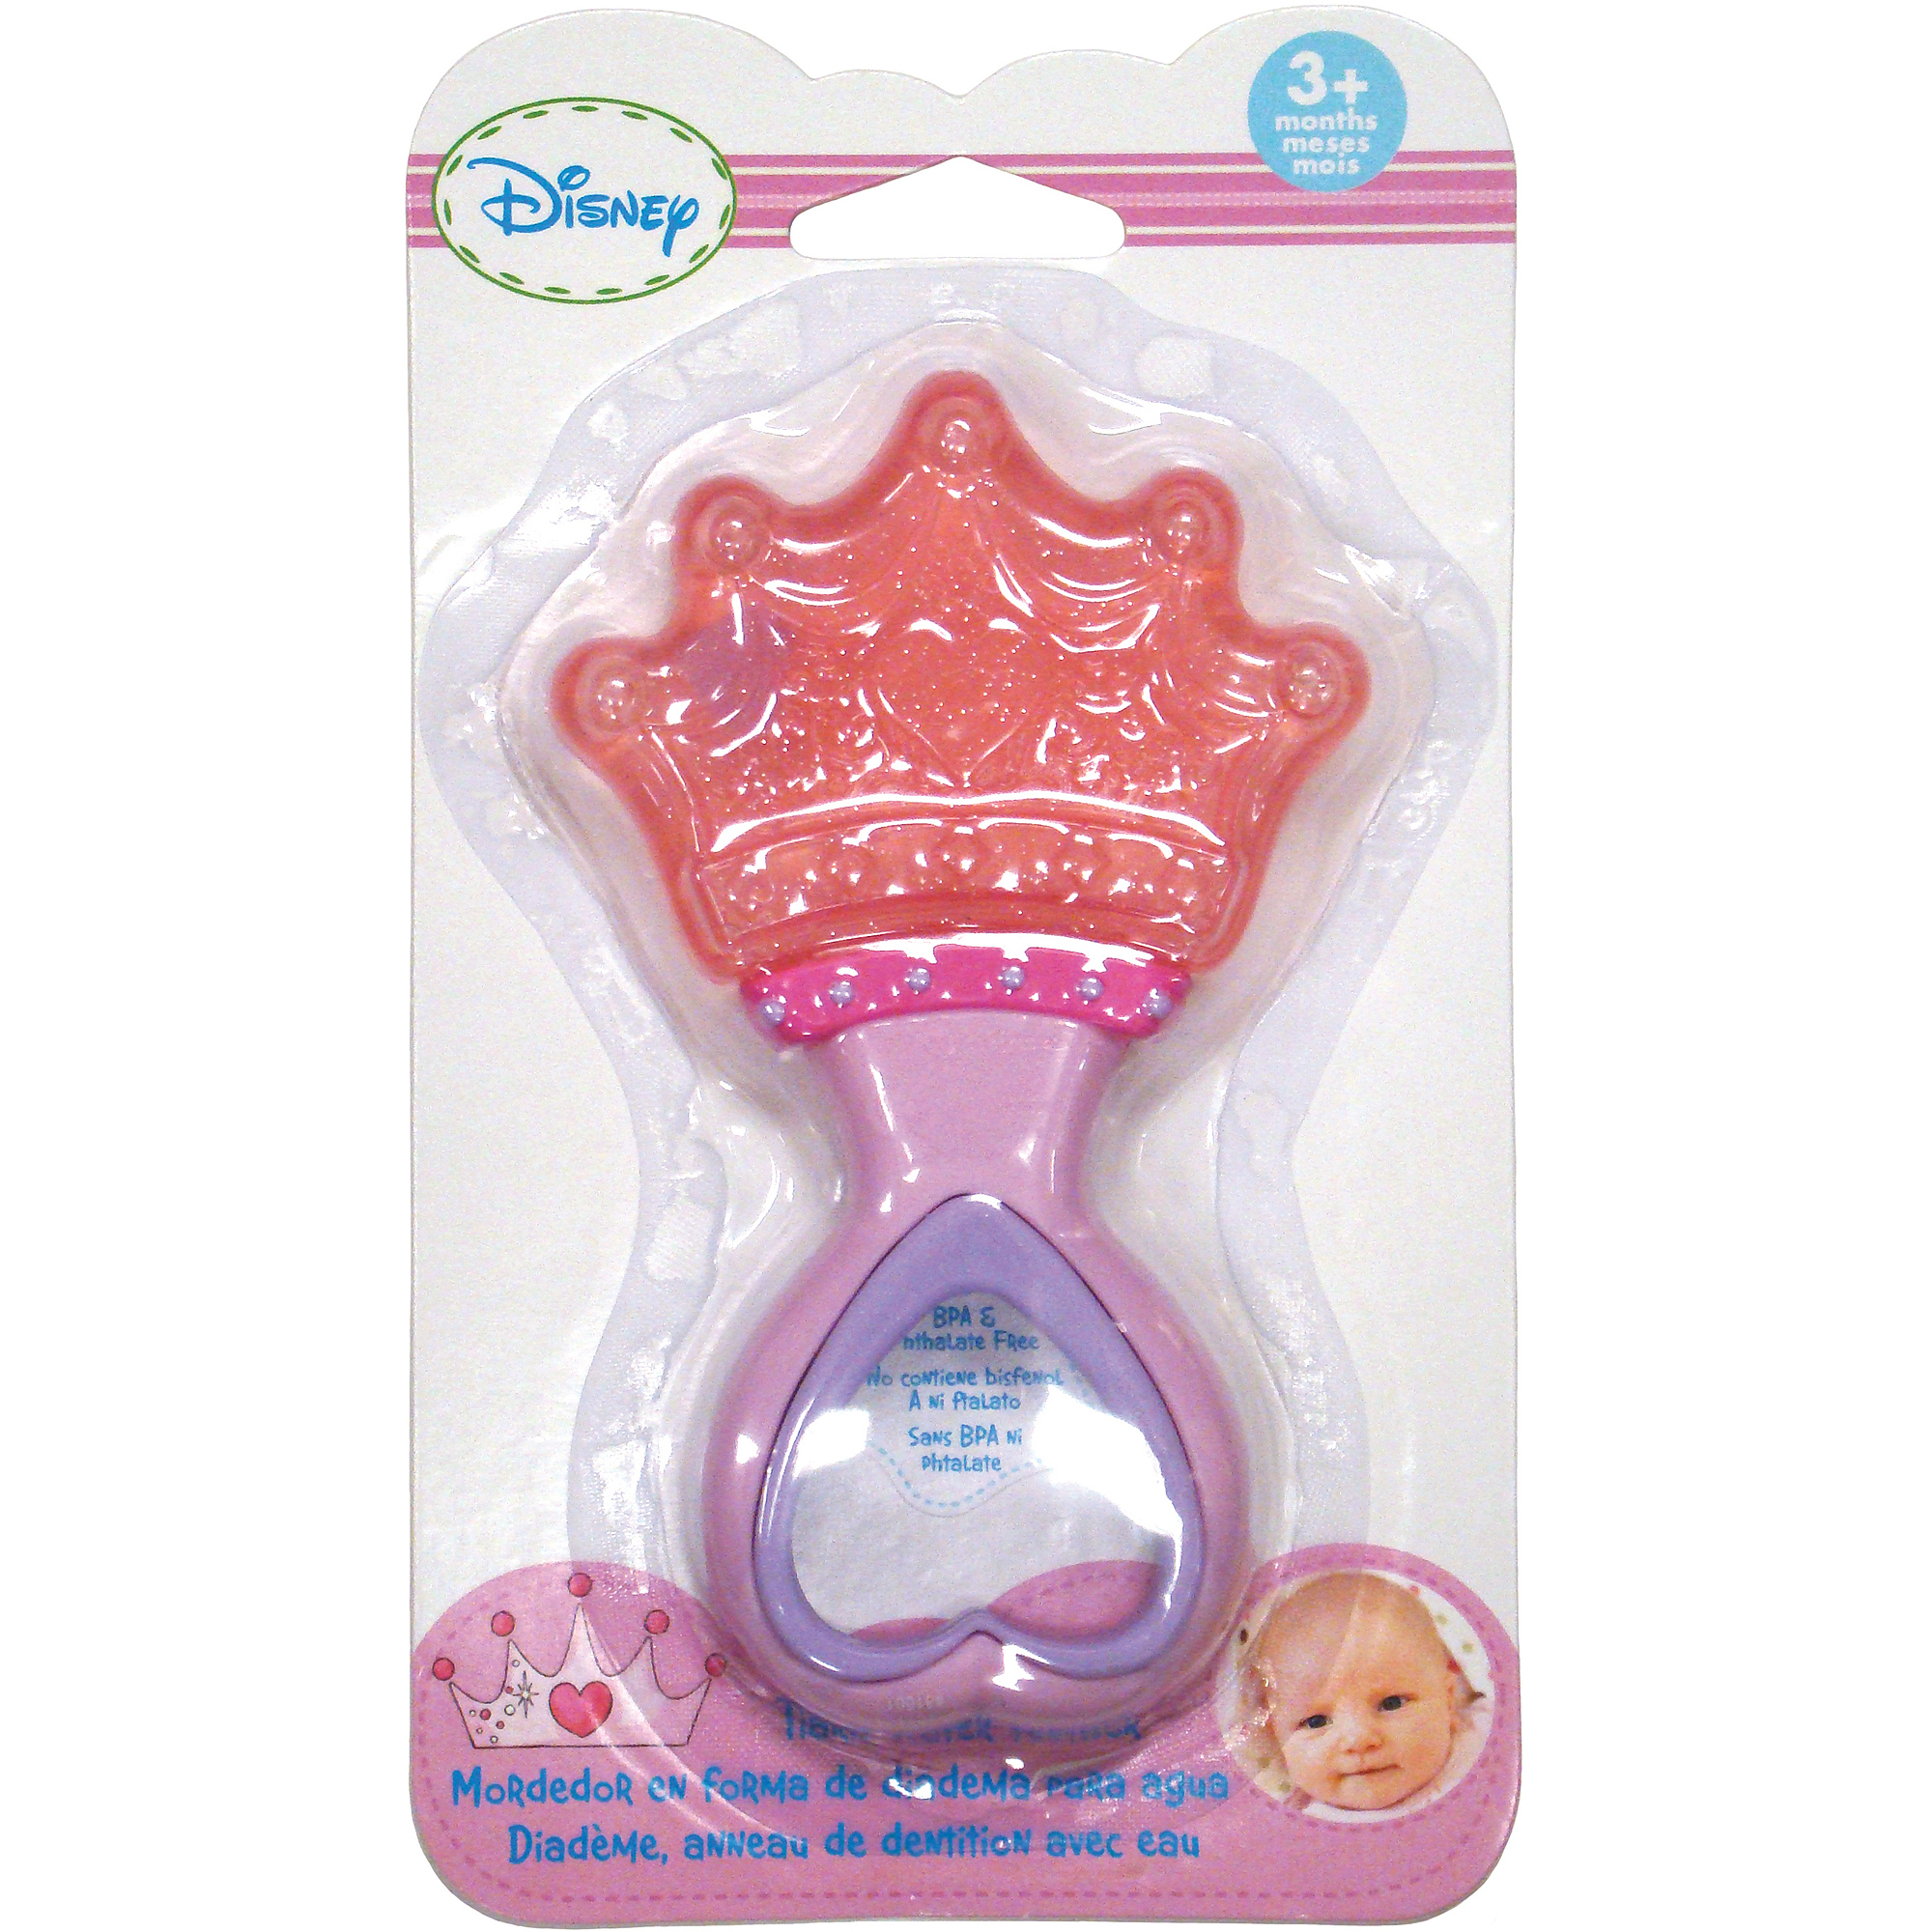 Kids Preferred Disney Baby Disney Princess Tiara Water Teether